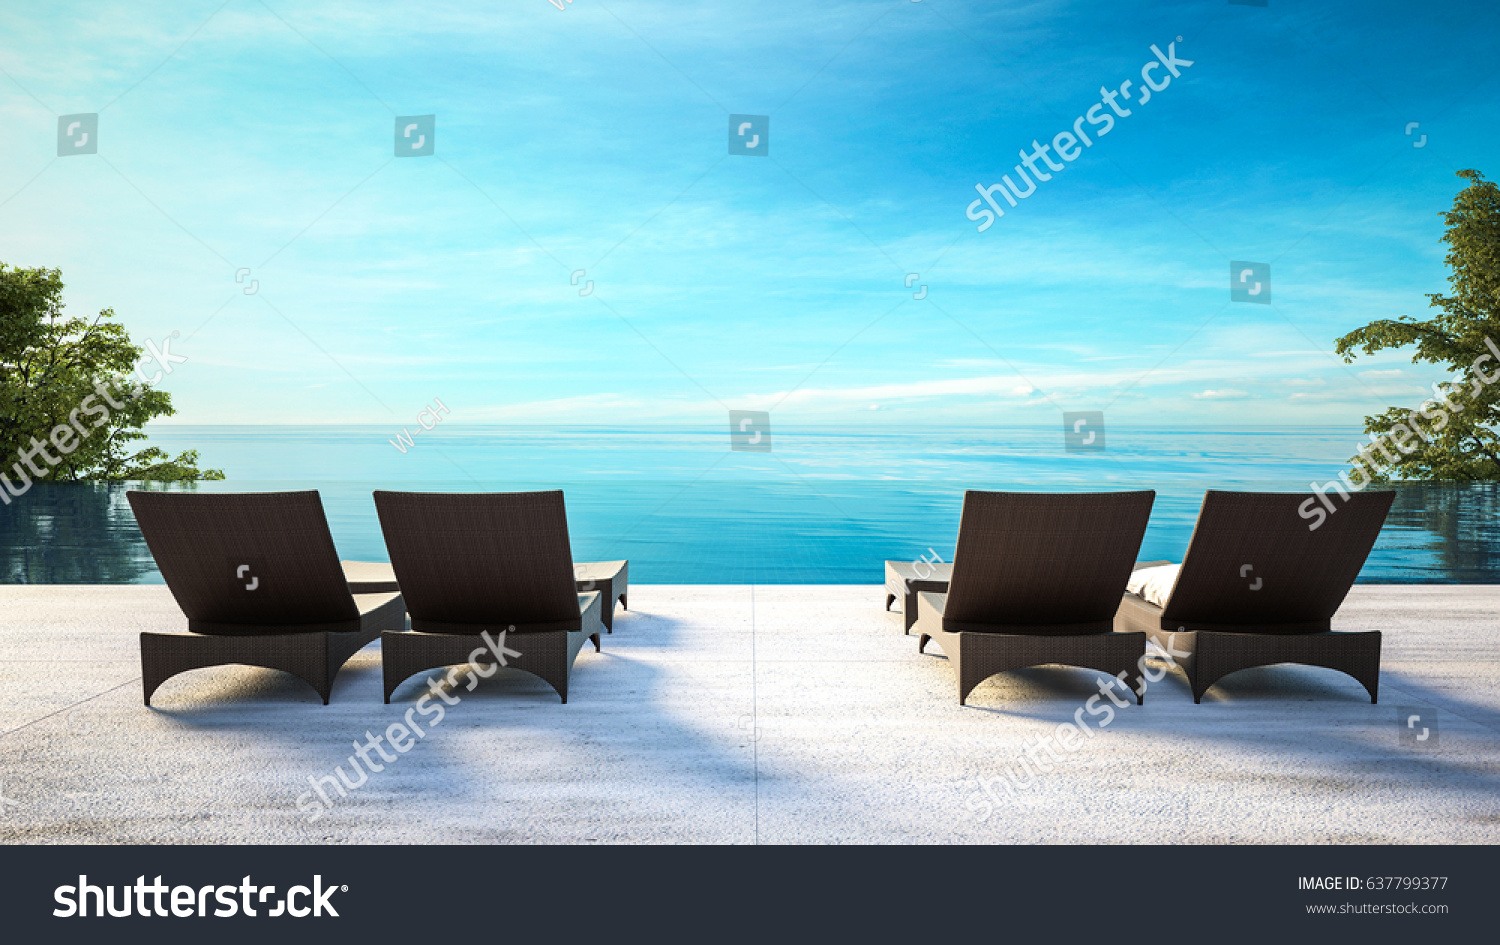 Beach lounge black outdoor chaise on stock illustration for Beach lounge chaise